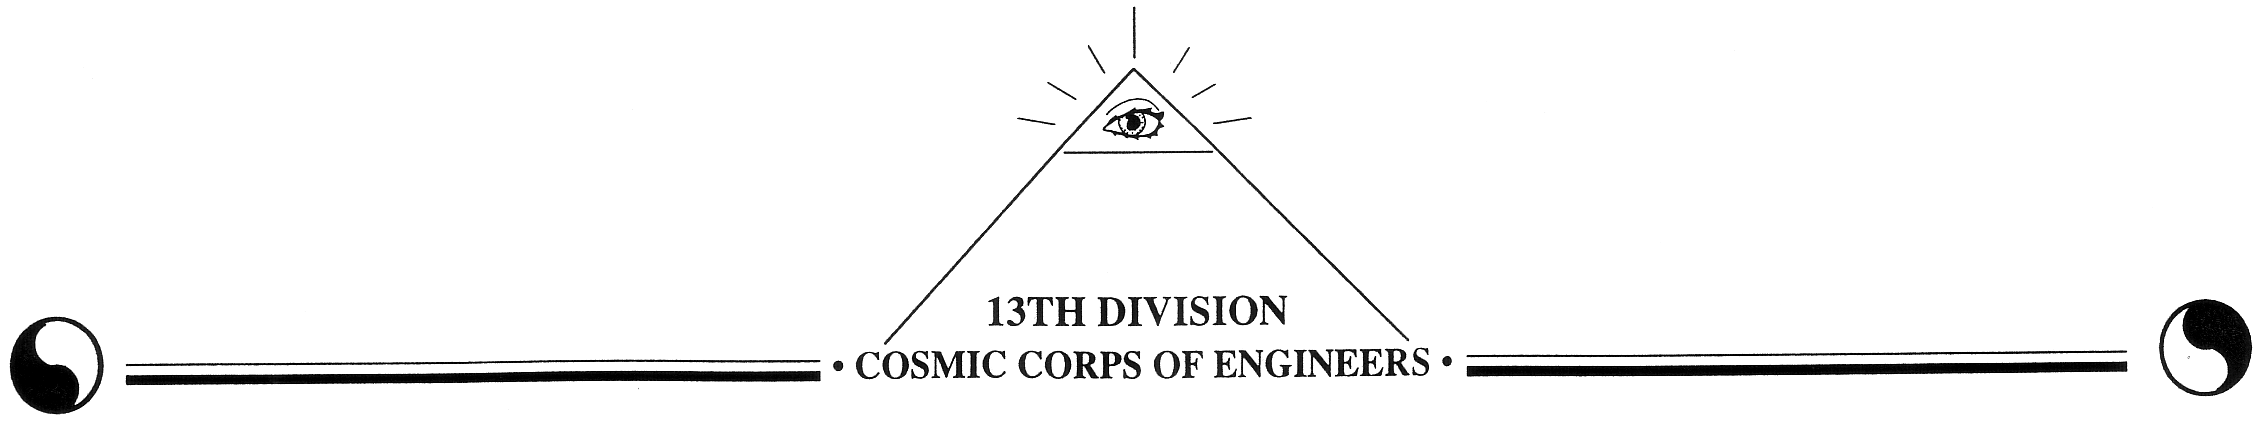 13th Division - Cosmic Corps pf Engineers